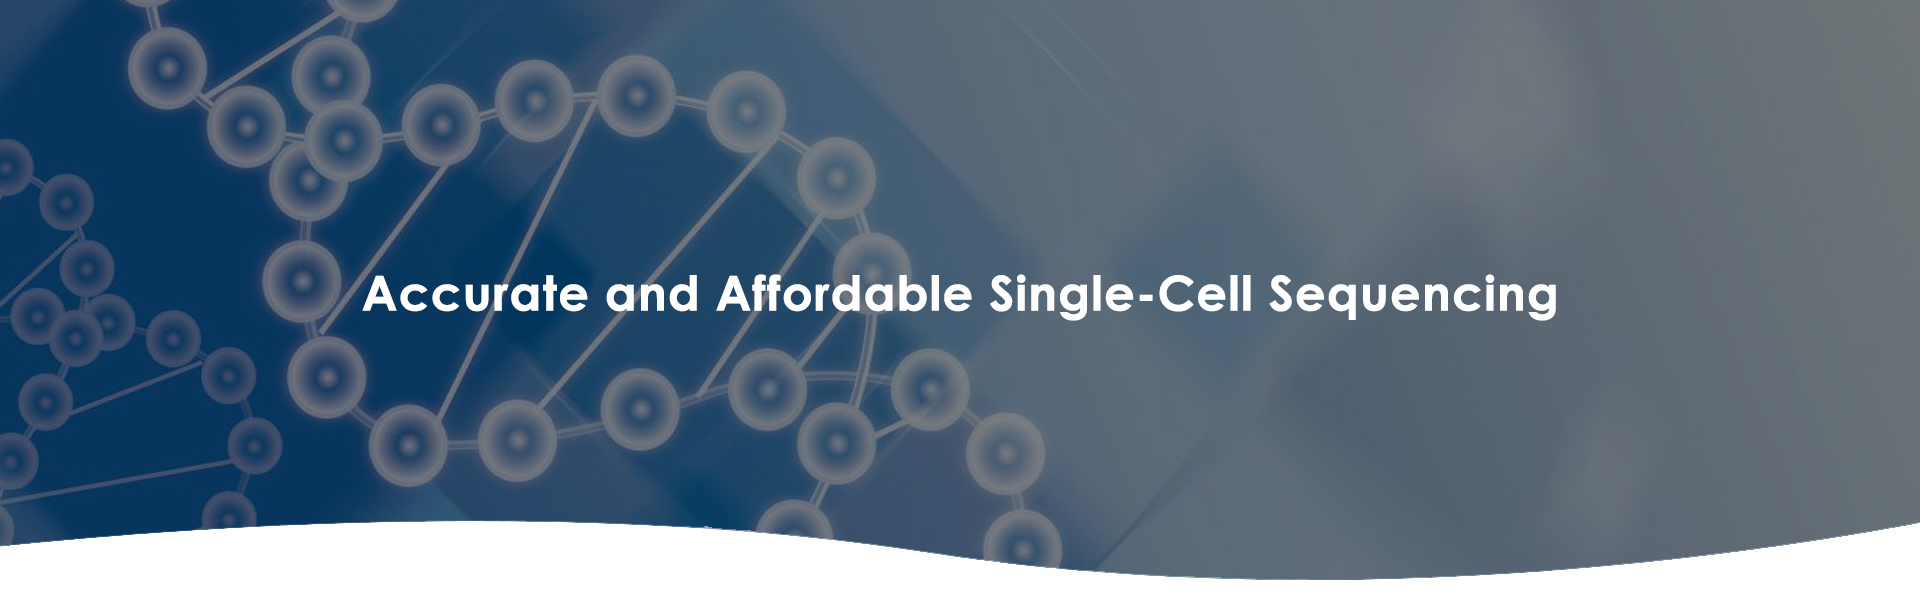 Single-Cell Sequencing